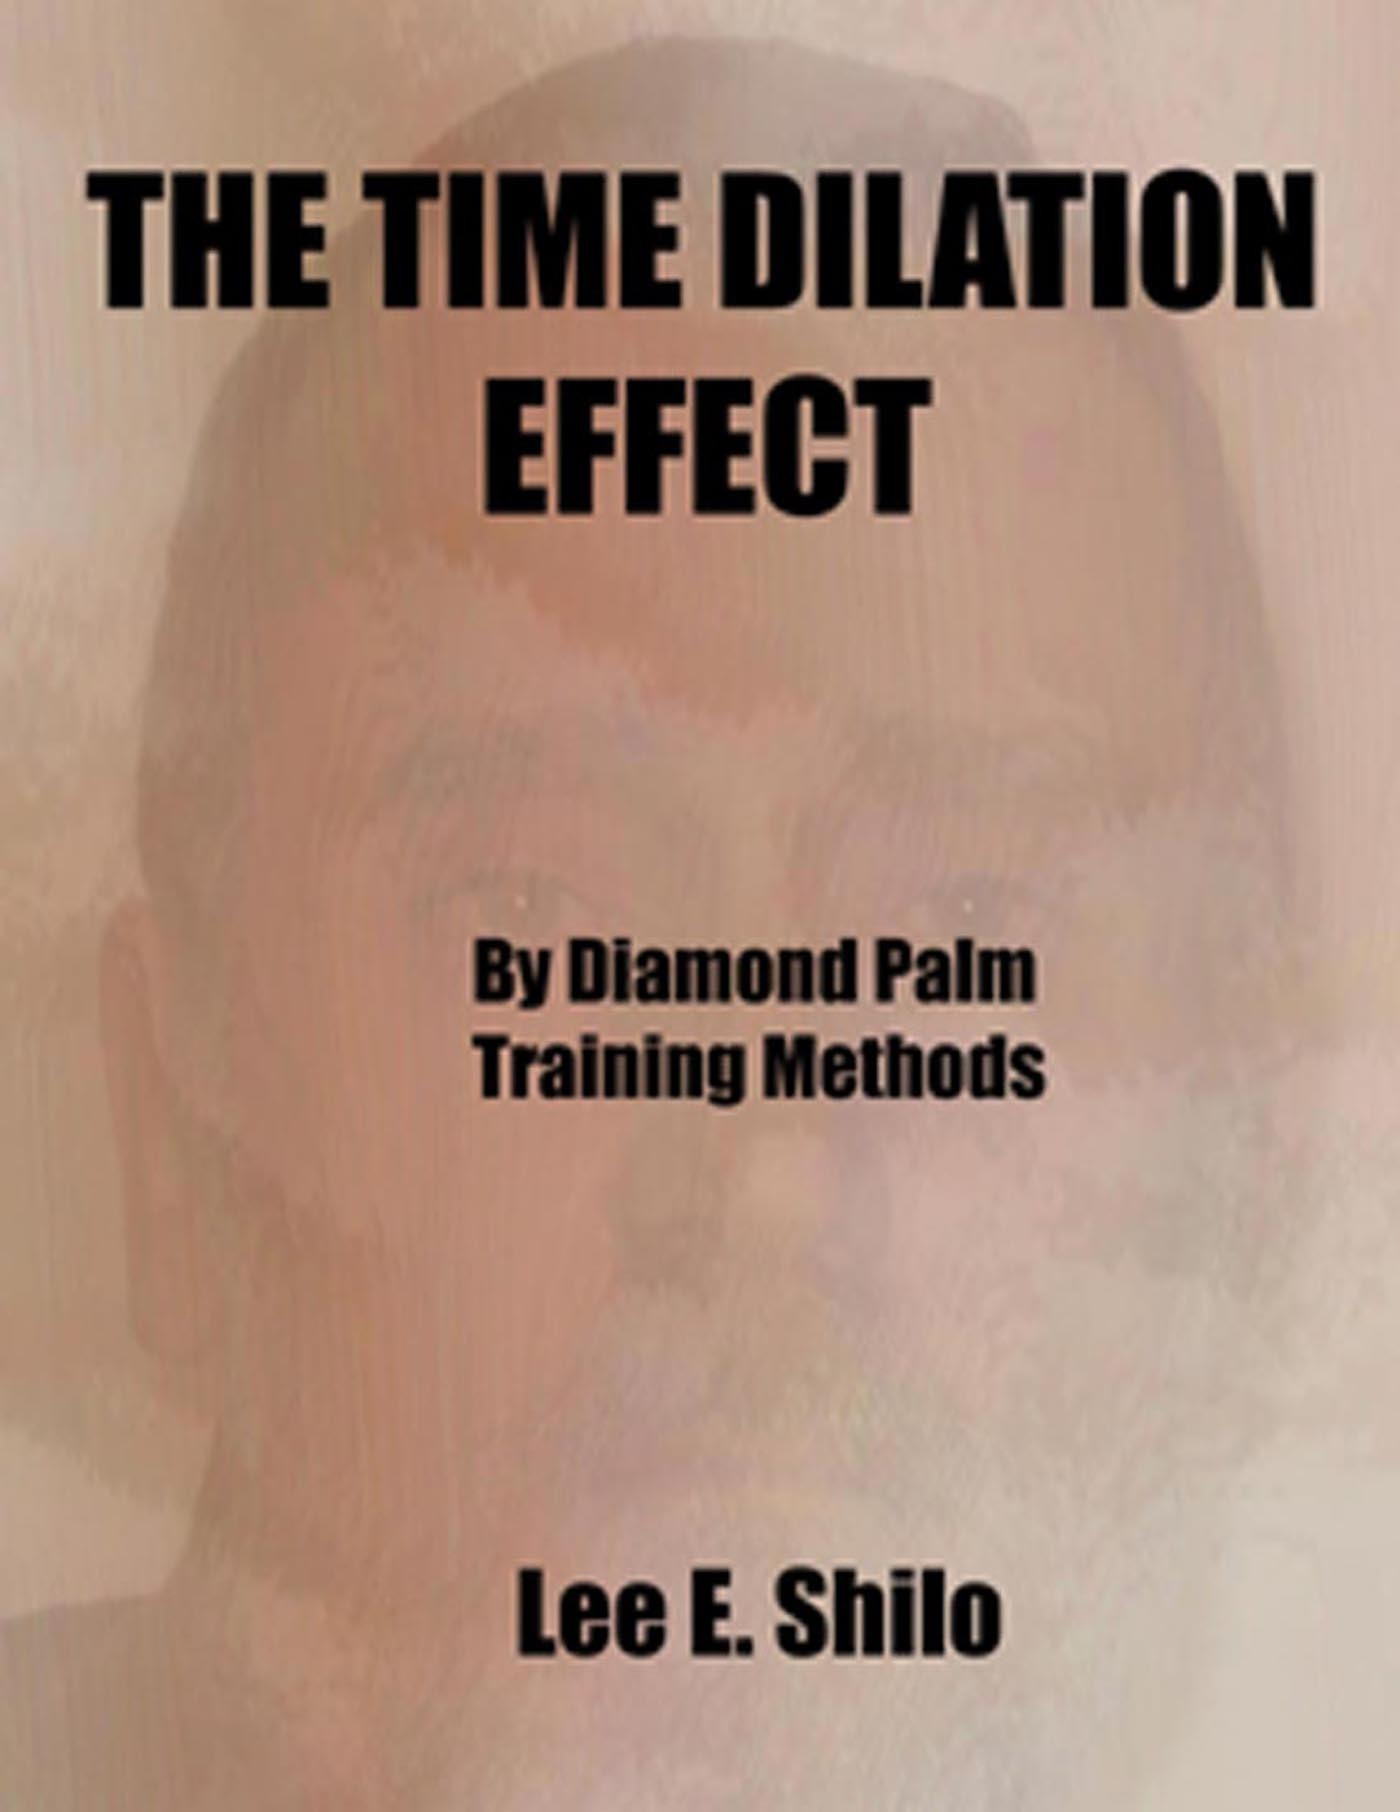 The Time Dilation Effect